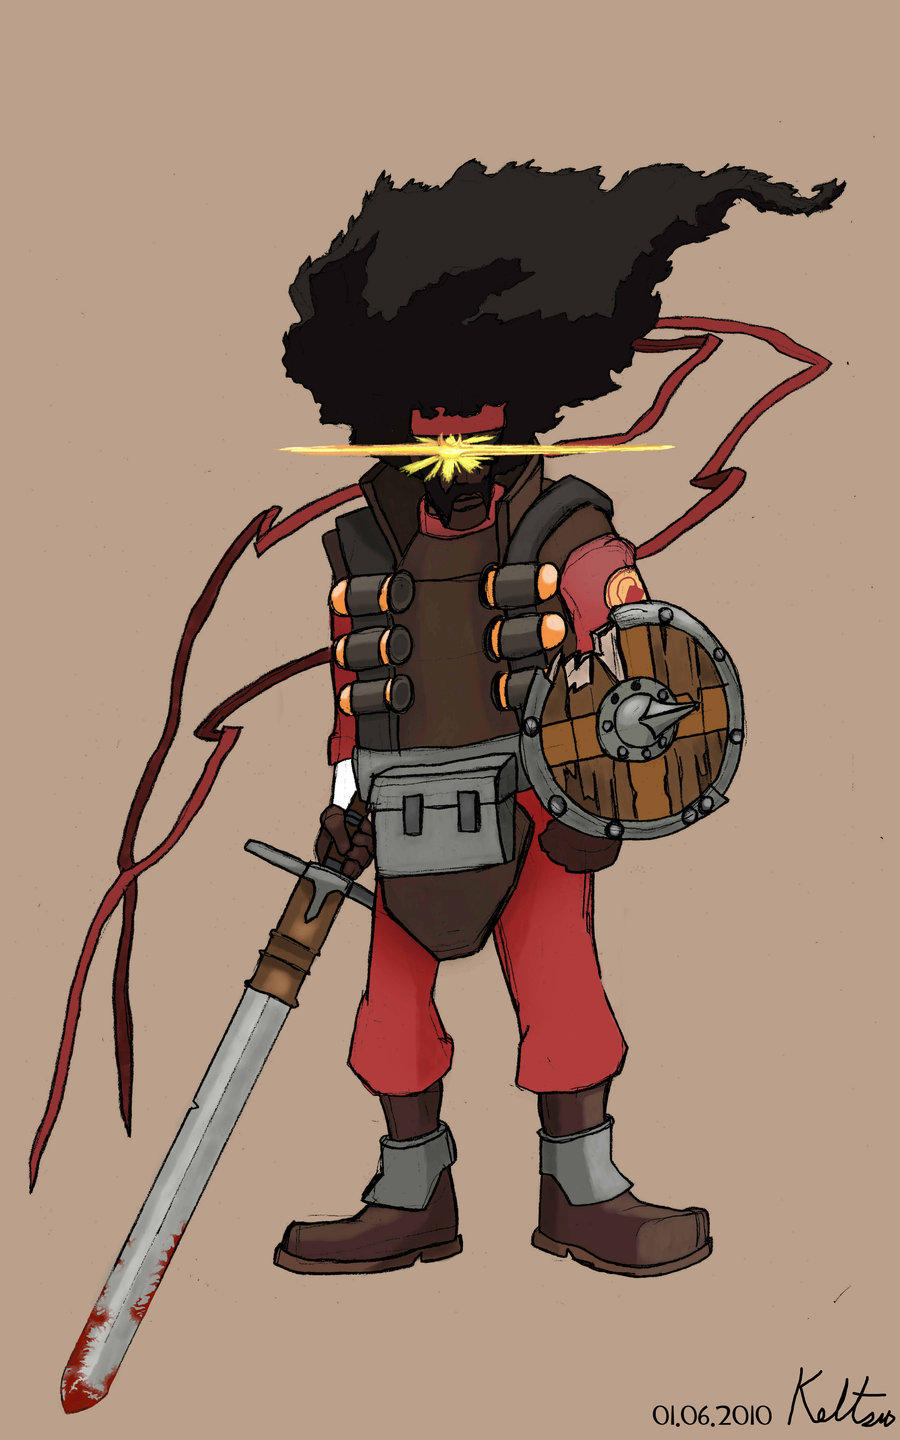 Afro Knight Team Fortress 2 Know Your Meme